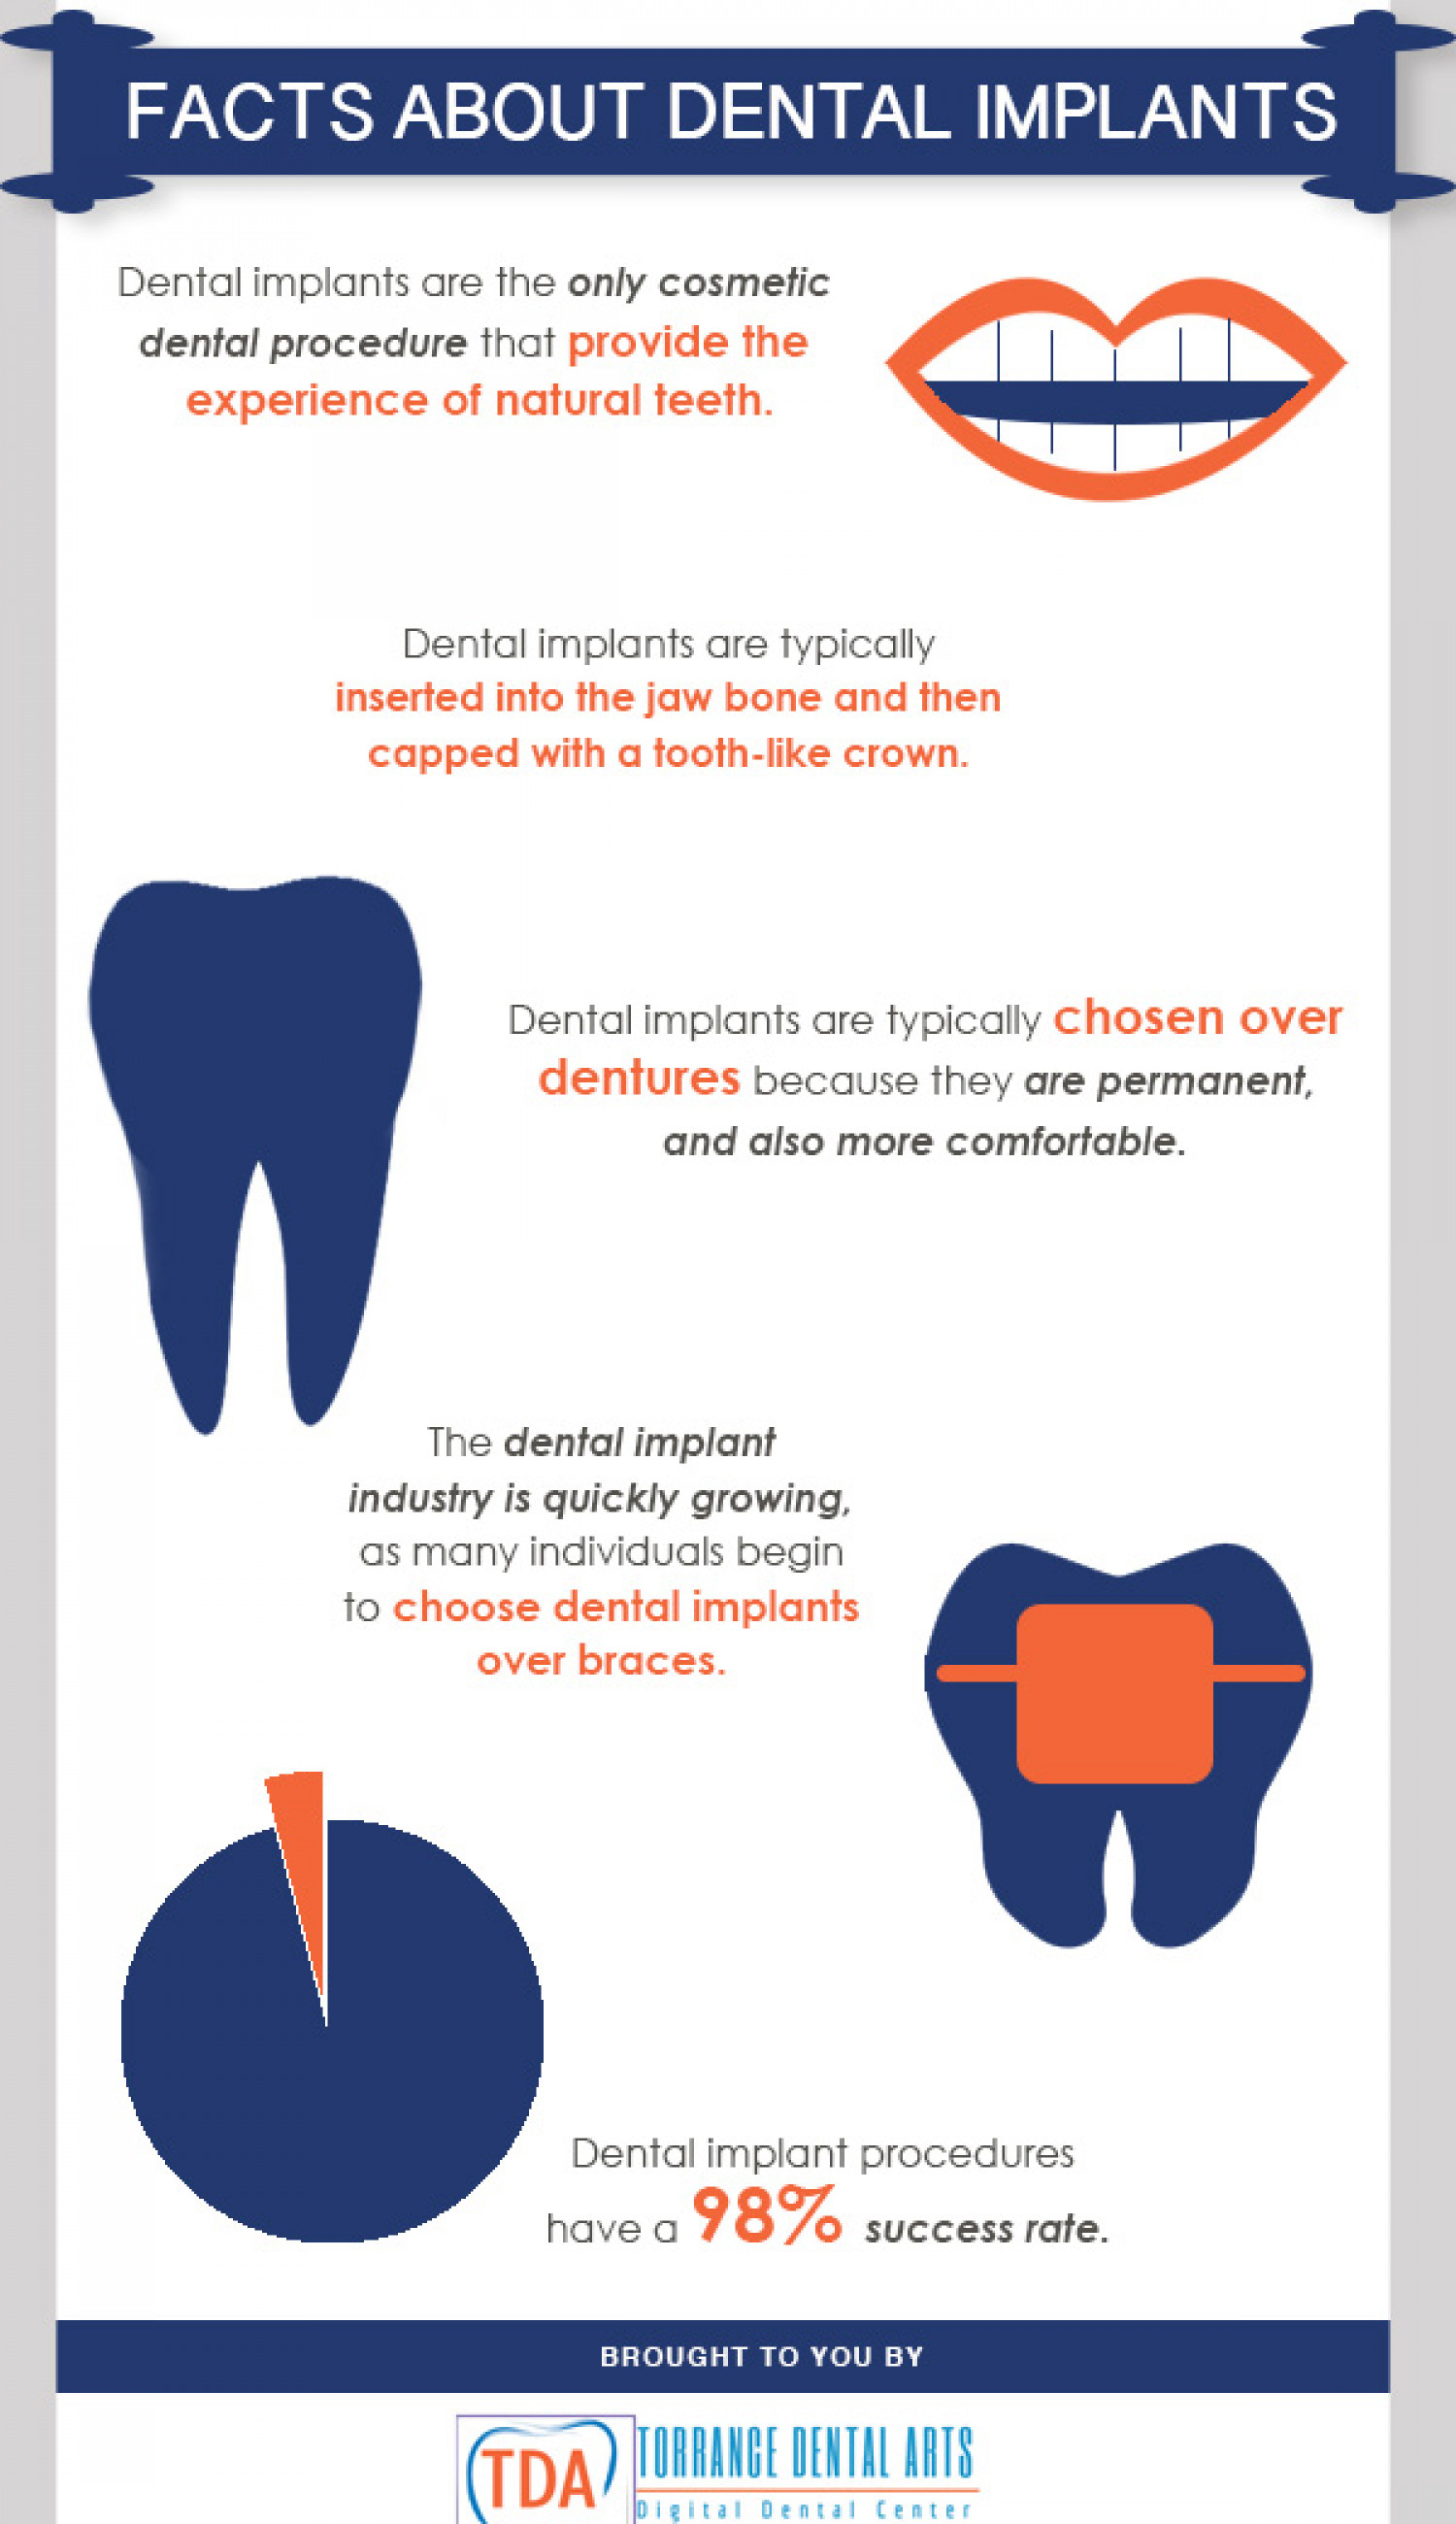 Facts About Dental Implants Infographic